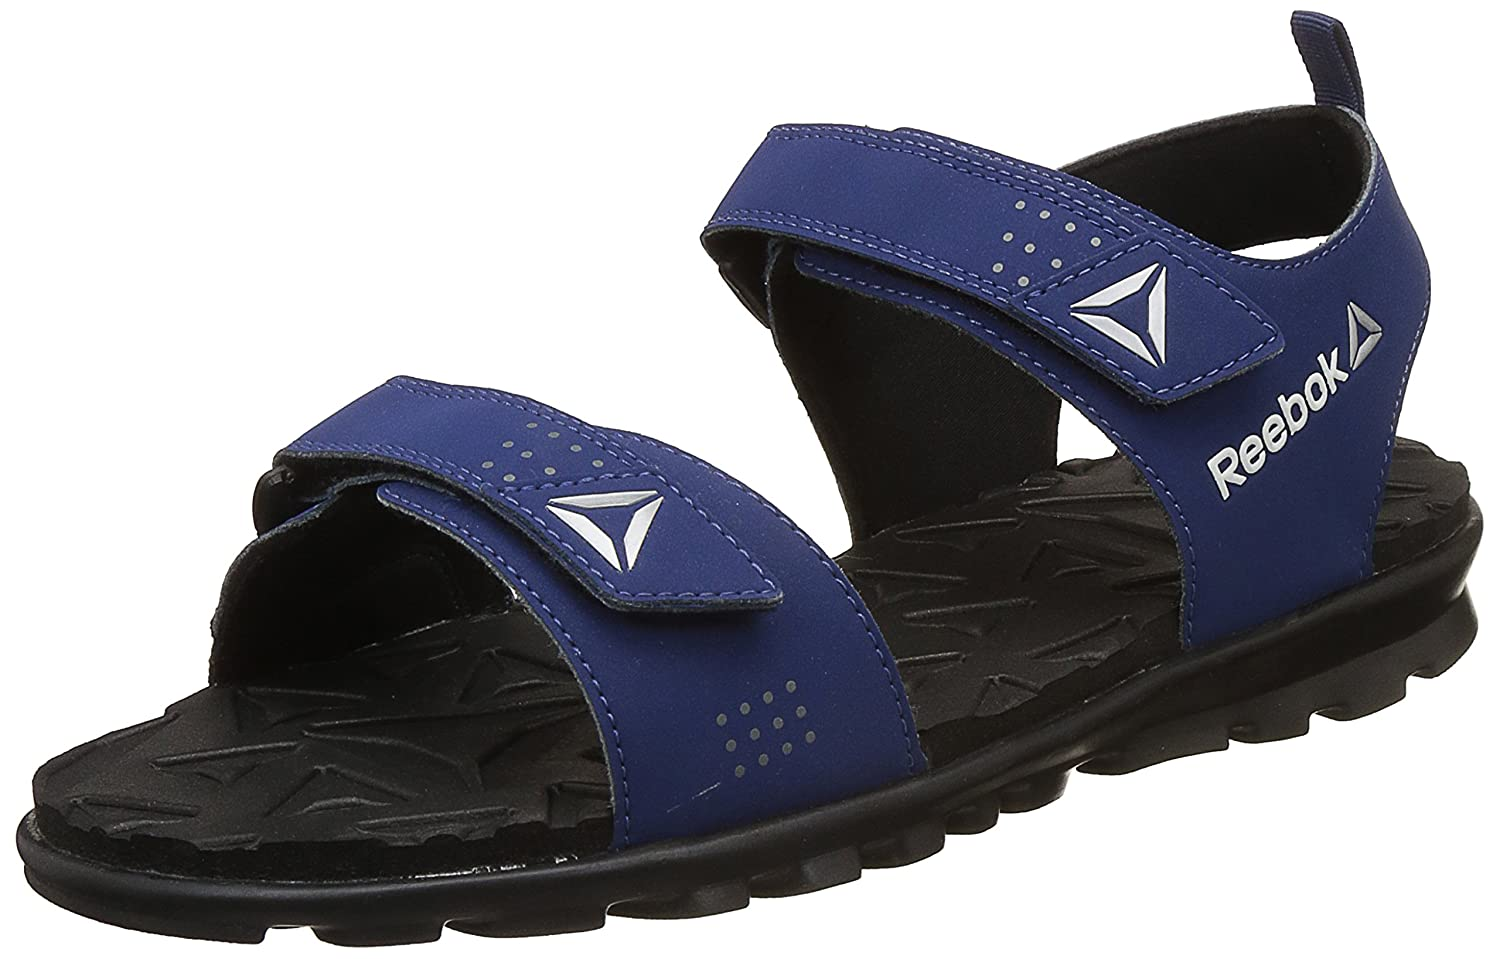 e5714e0c5 Reebok Men s Royal Flex Blue Yellow Metsil Wht Grey Sandals - 8 UK India  (42 EU)(9 US) (BS9658)  Buy Online at Low Prices in India - Amazon.in